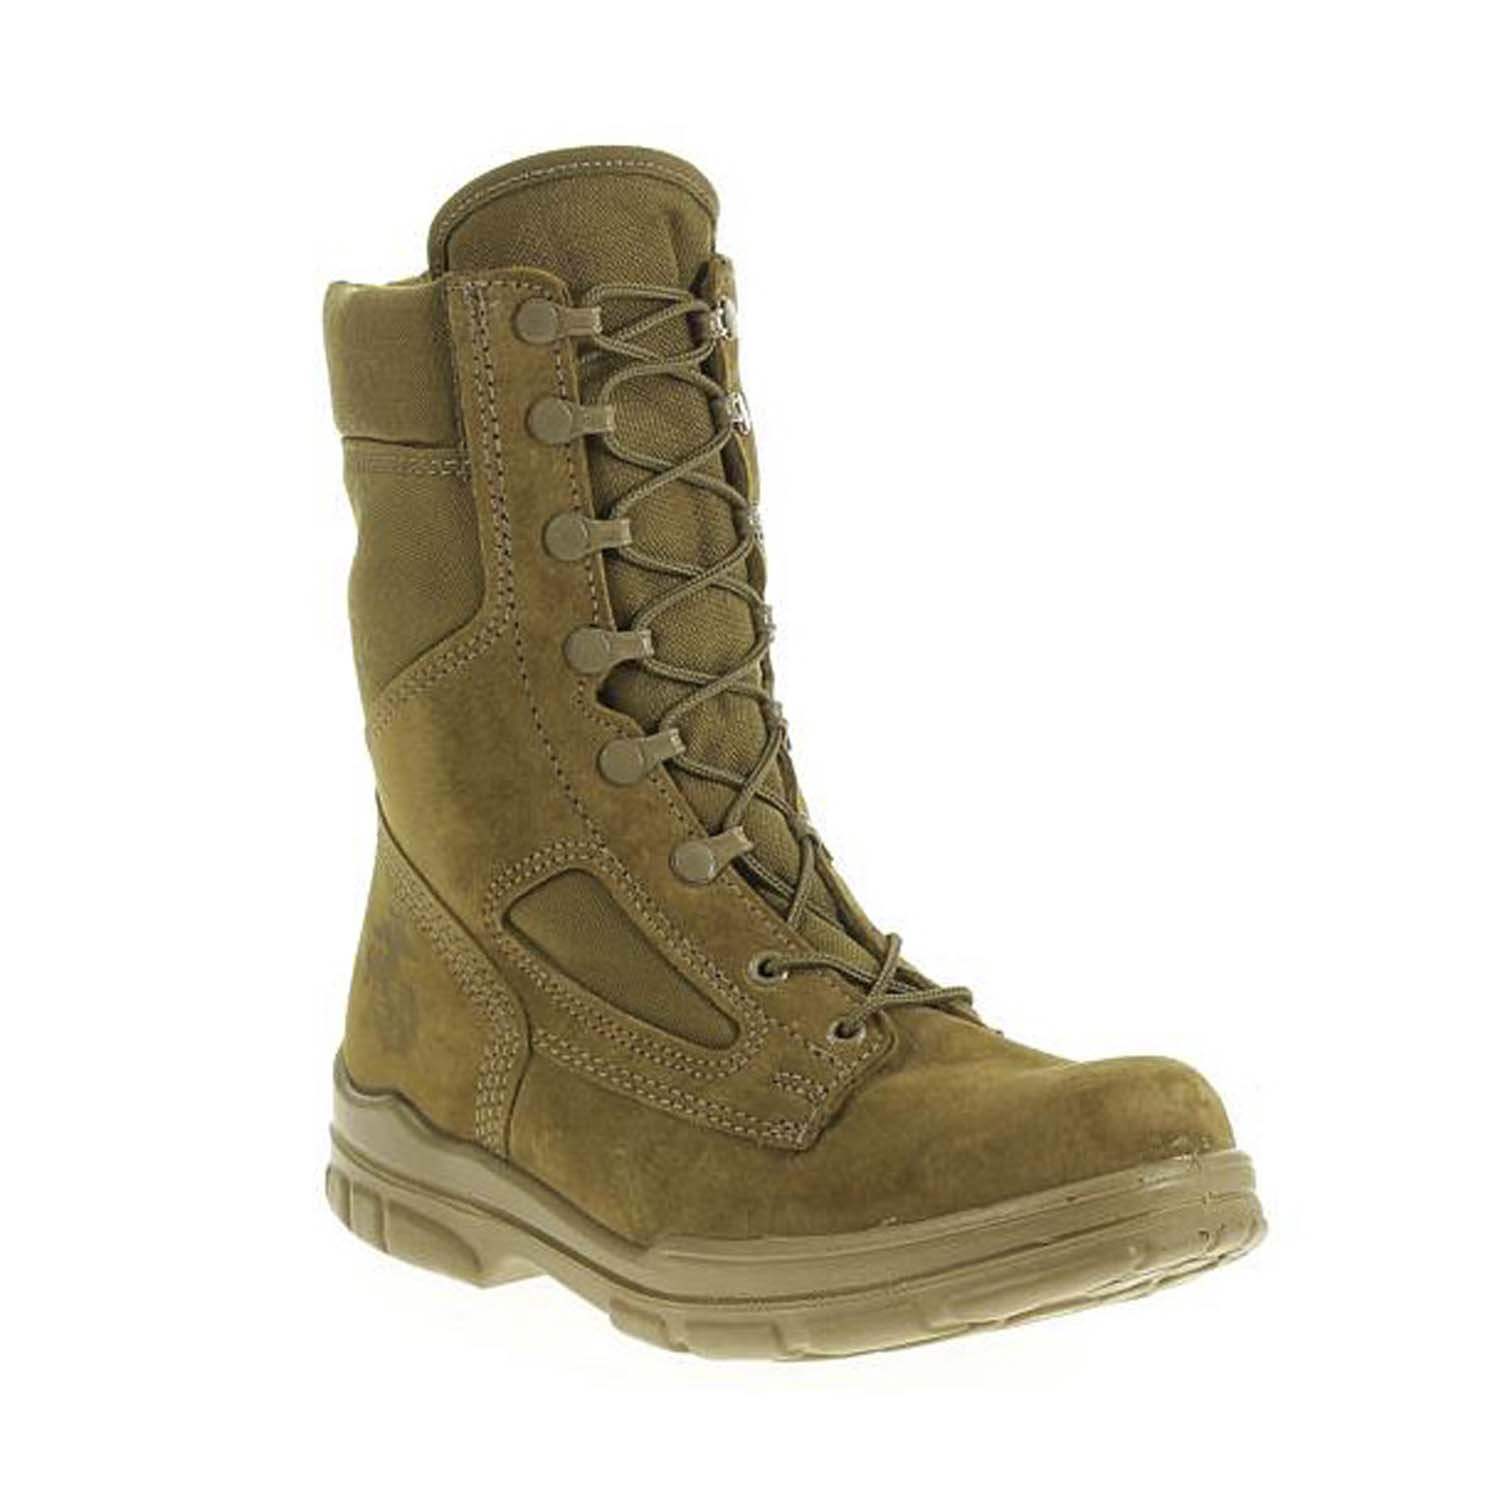 Bates USMC Lightweight DuraShocks Tactical Boot